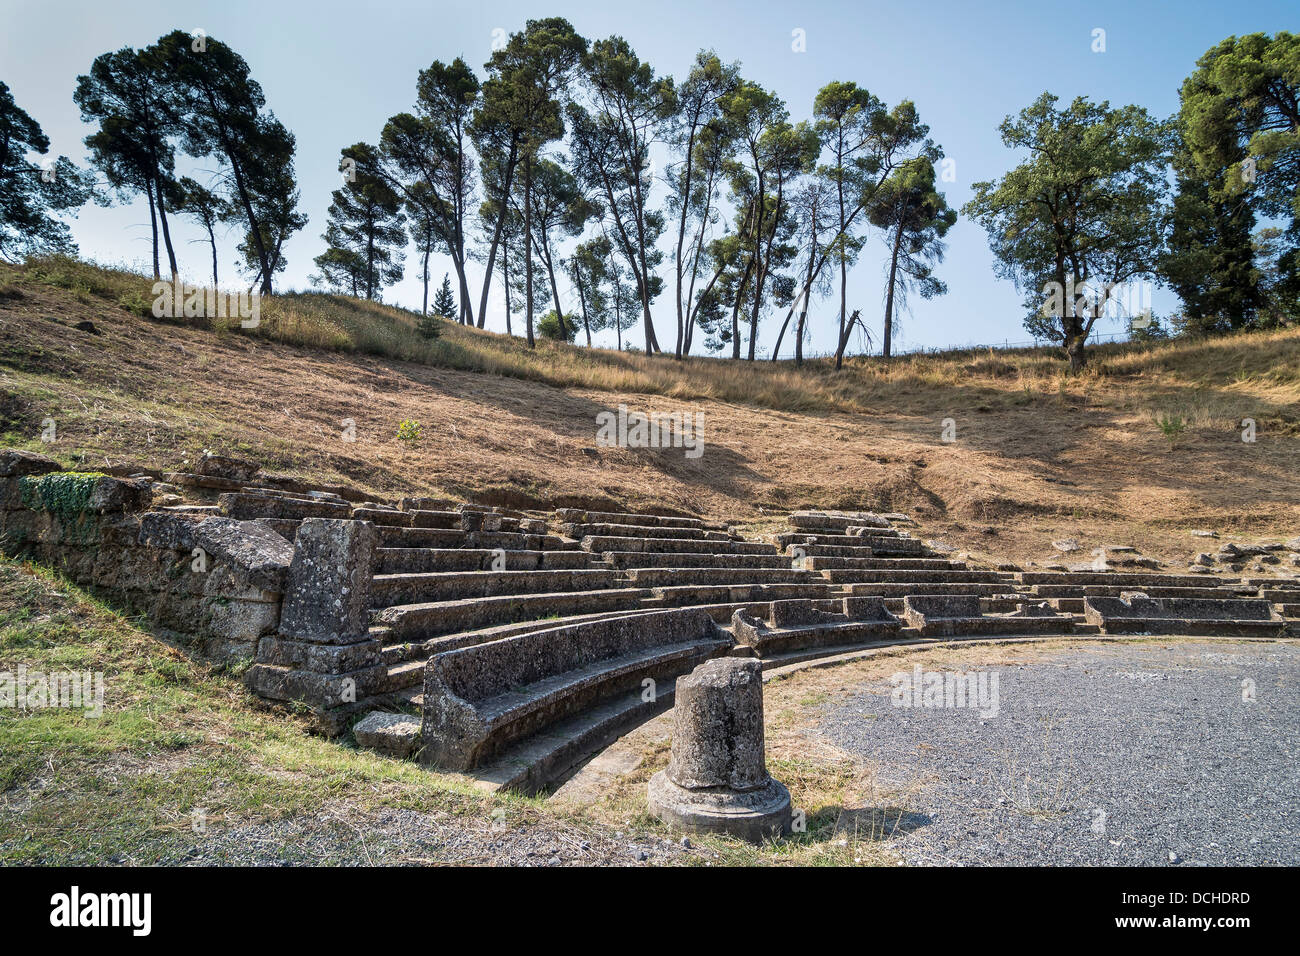 The ruins of the theatre at Ancient Megalopolis. Megalopoli, central Peloponnese, Greece. Stock Photo